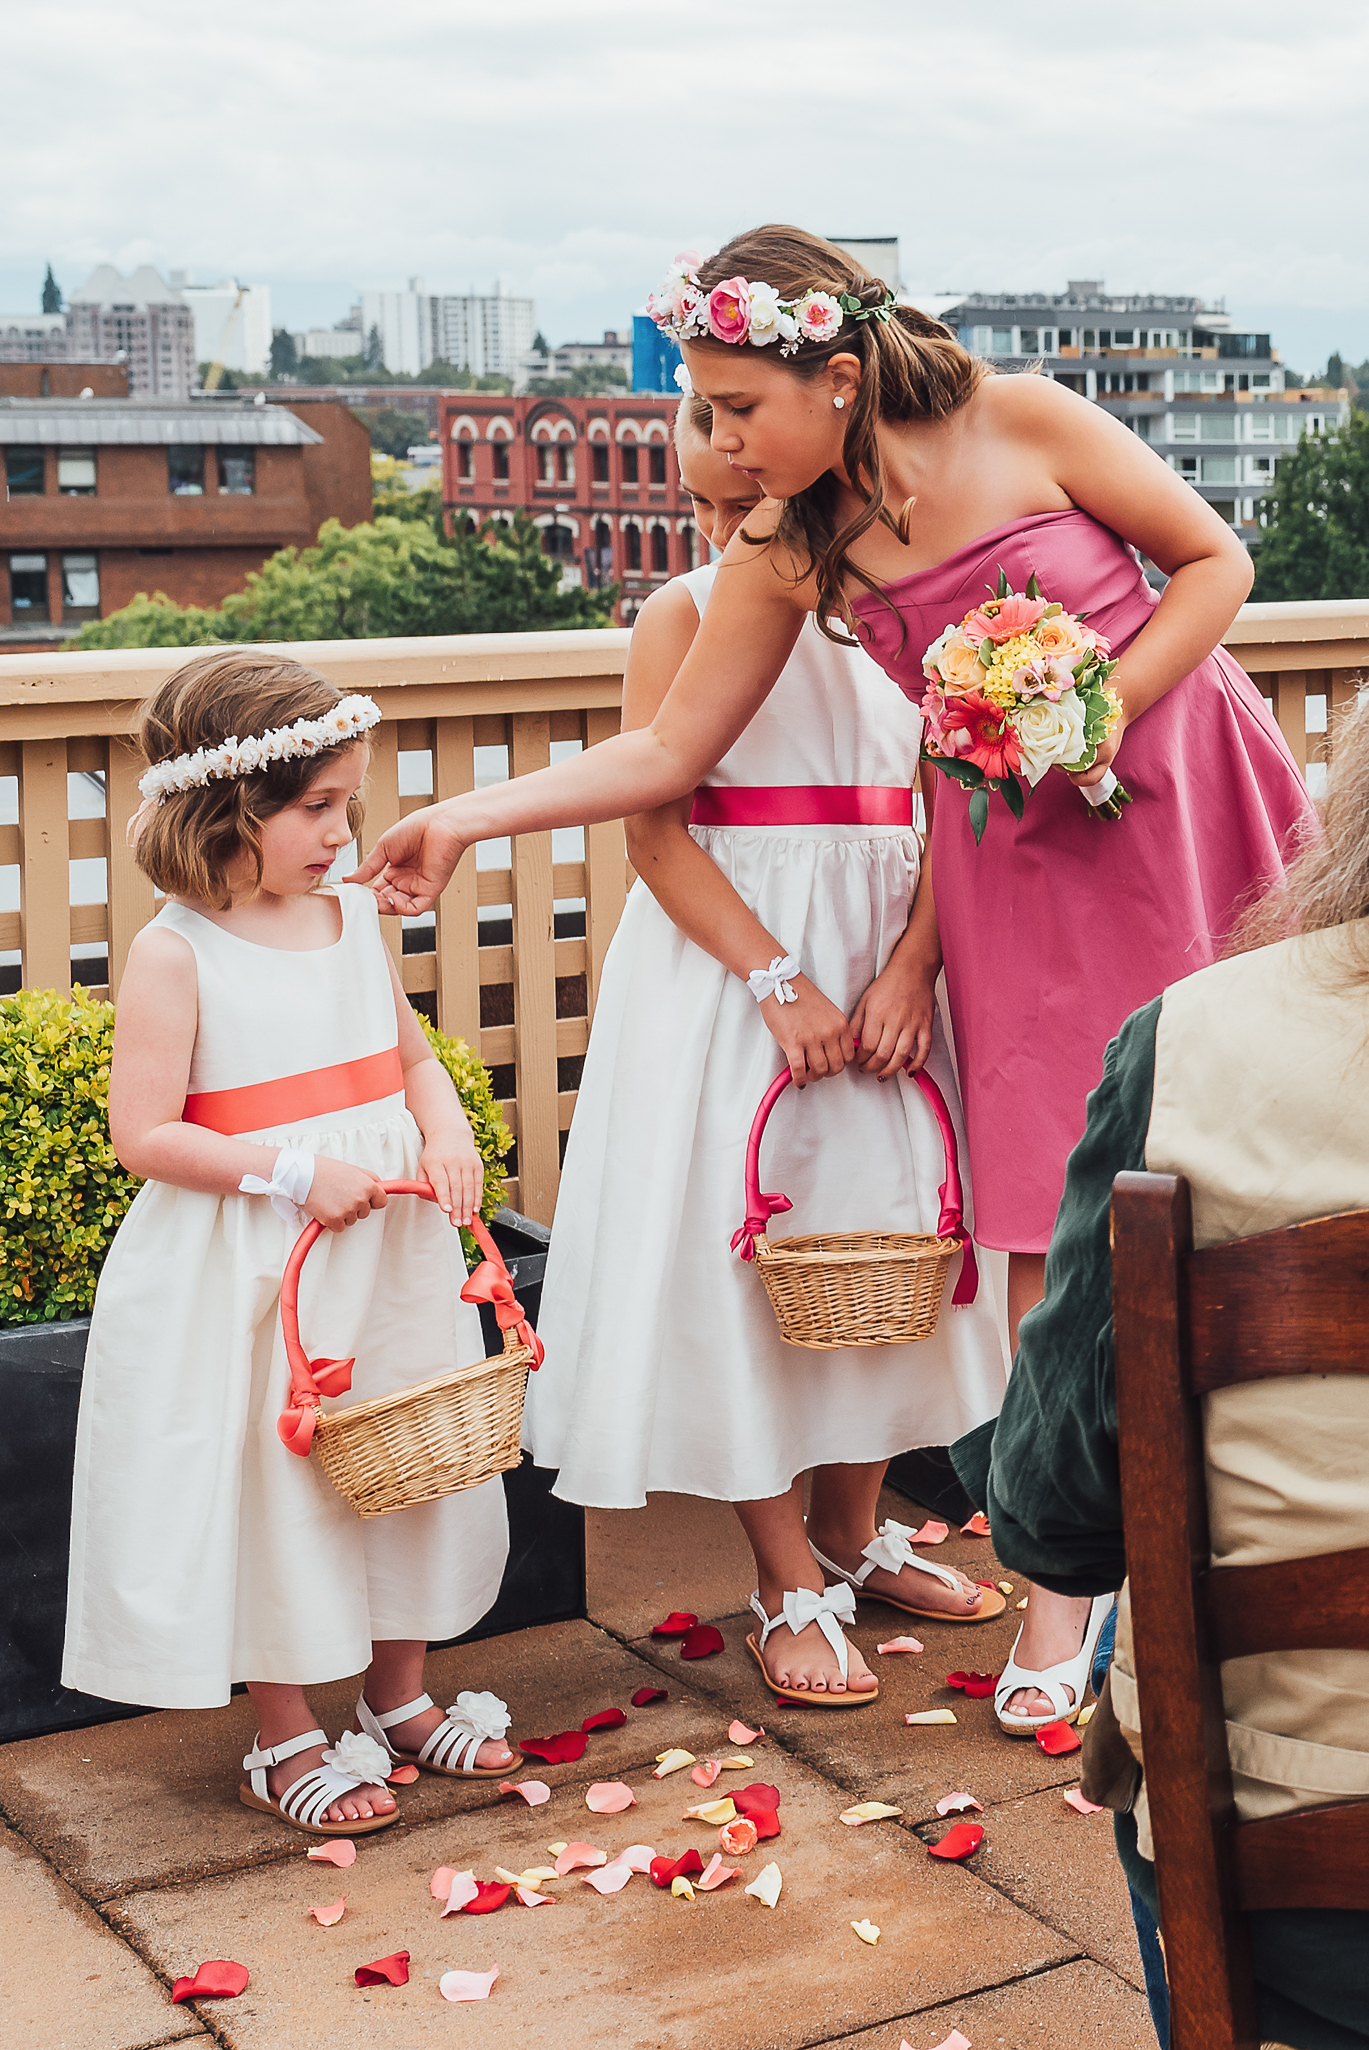 Lily_and_Lane_Childrens_Photographer_Victoria_BC-29.jpg